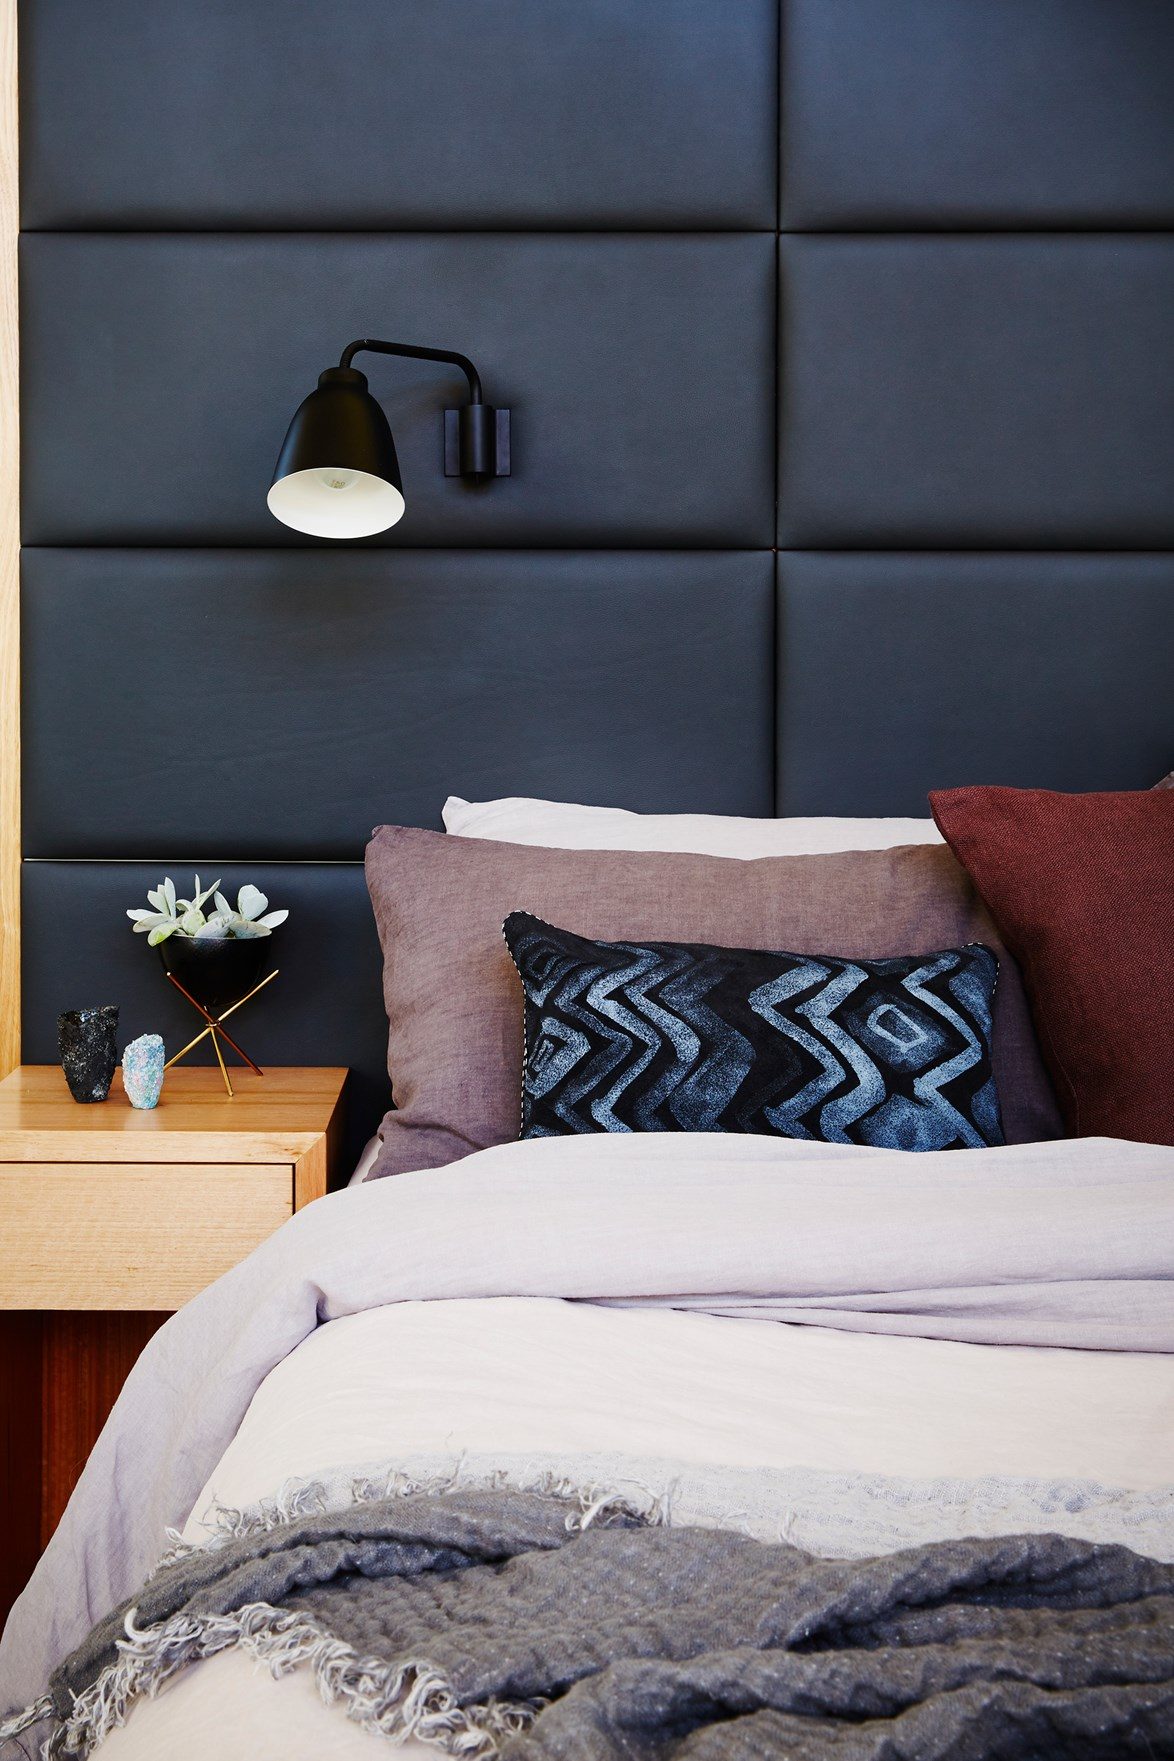 """A custom-made leather bedhead and layers of linen in soft, muted tones make for a welcoming, relaxed bedroom in this [converted warehouse in Melbourne](https://www.homestolove.com.au/cosying-up-a-melbourne-warehouse-conversion-3653 